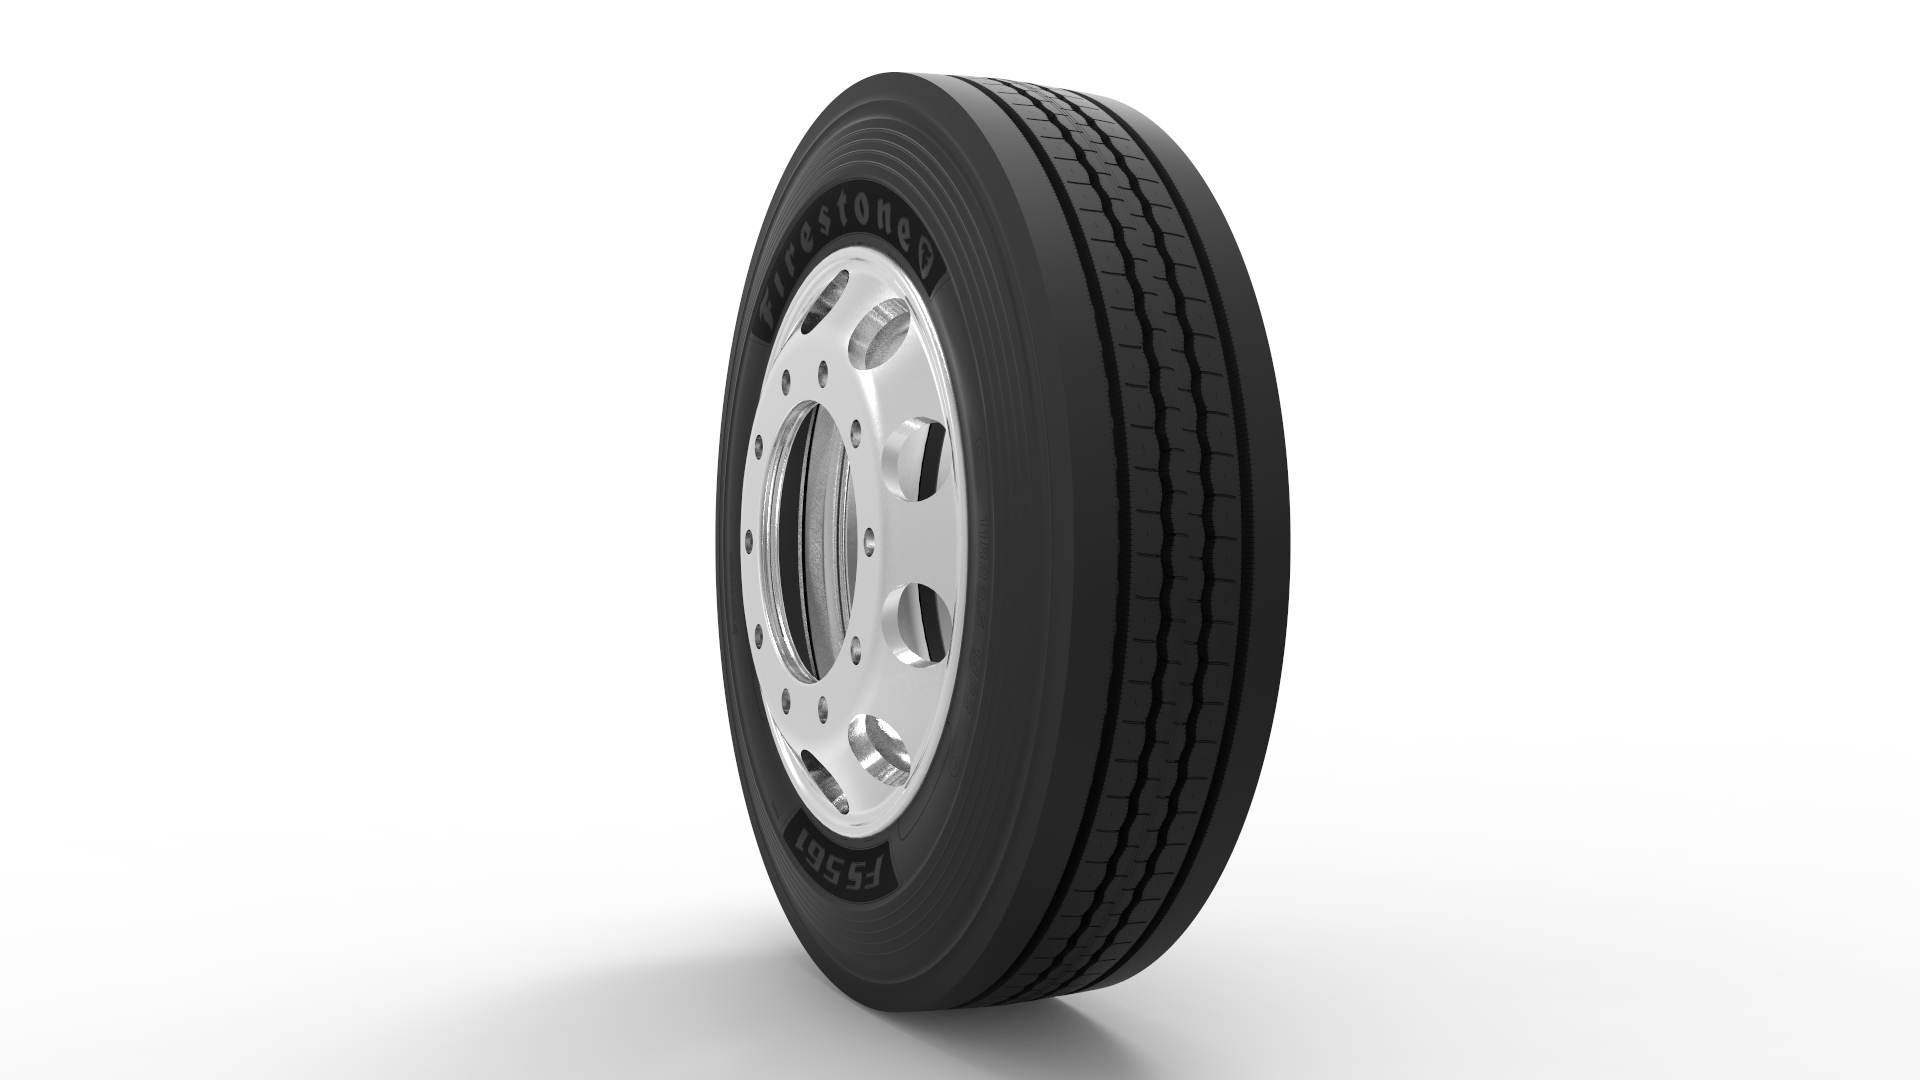 Firestone FS561 tire